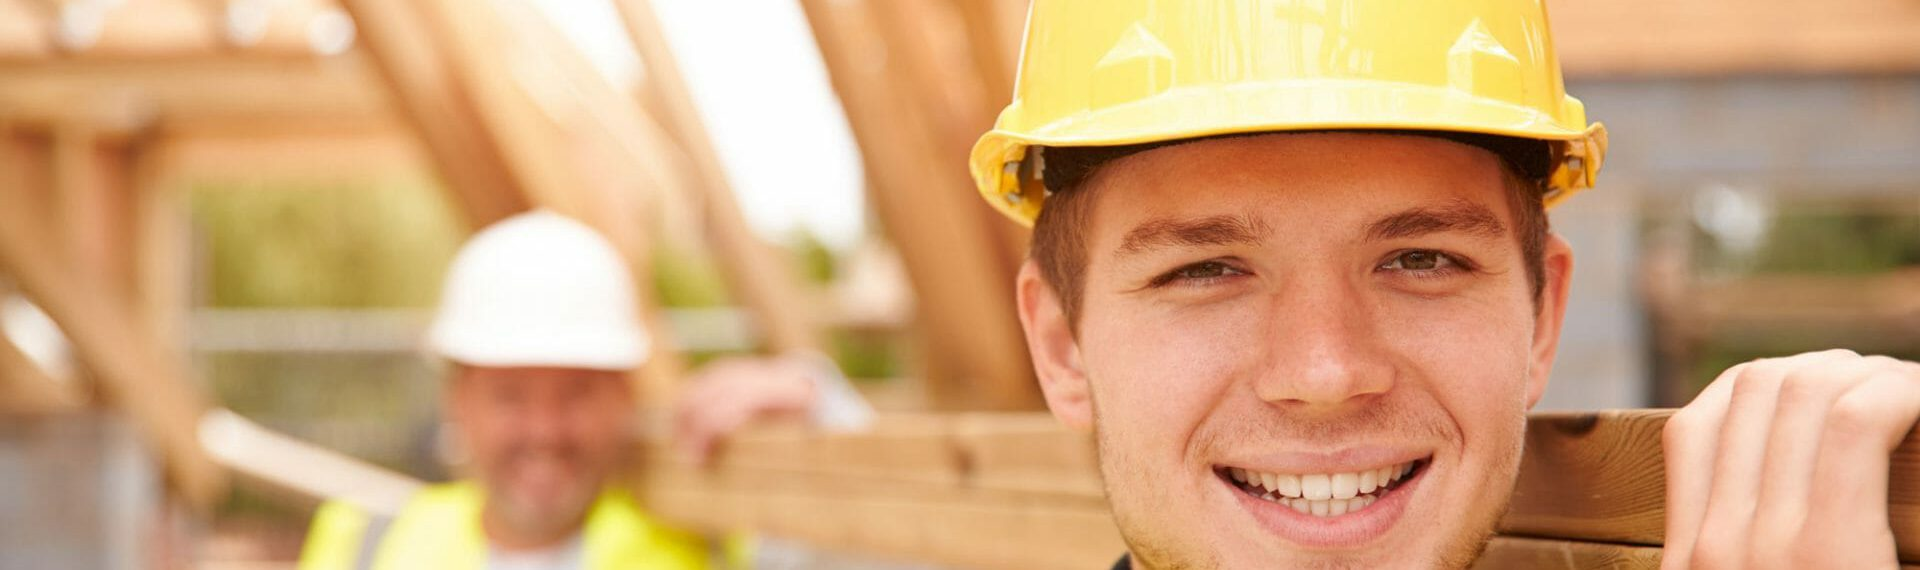 Bringing In New Blood: What You Need To Know When Hiring Apprentices Or Trainees